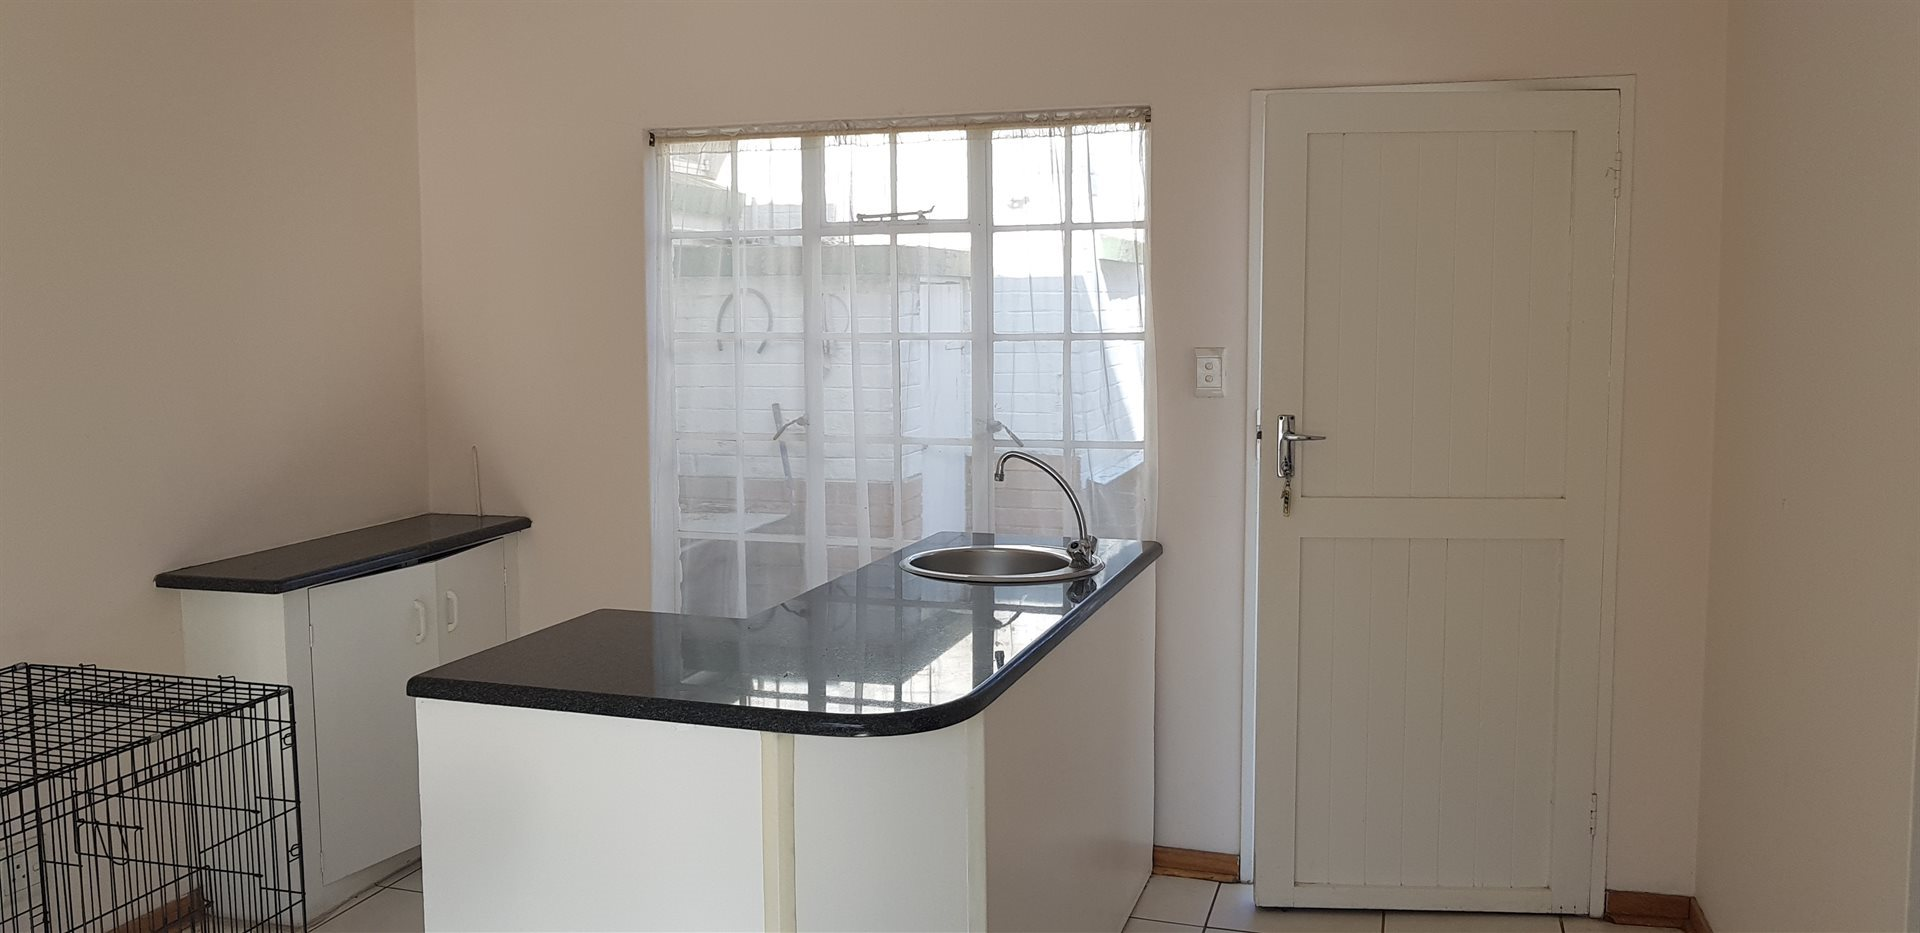 Highlands North property for sale. Ref No: 13649352. Picture no 6